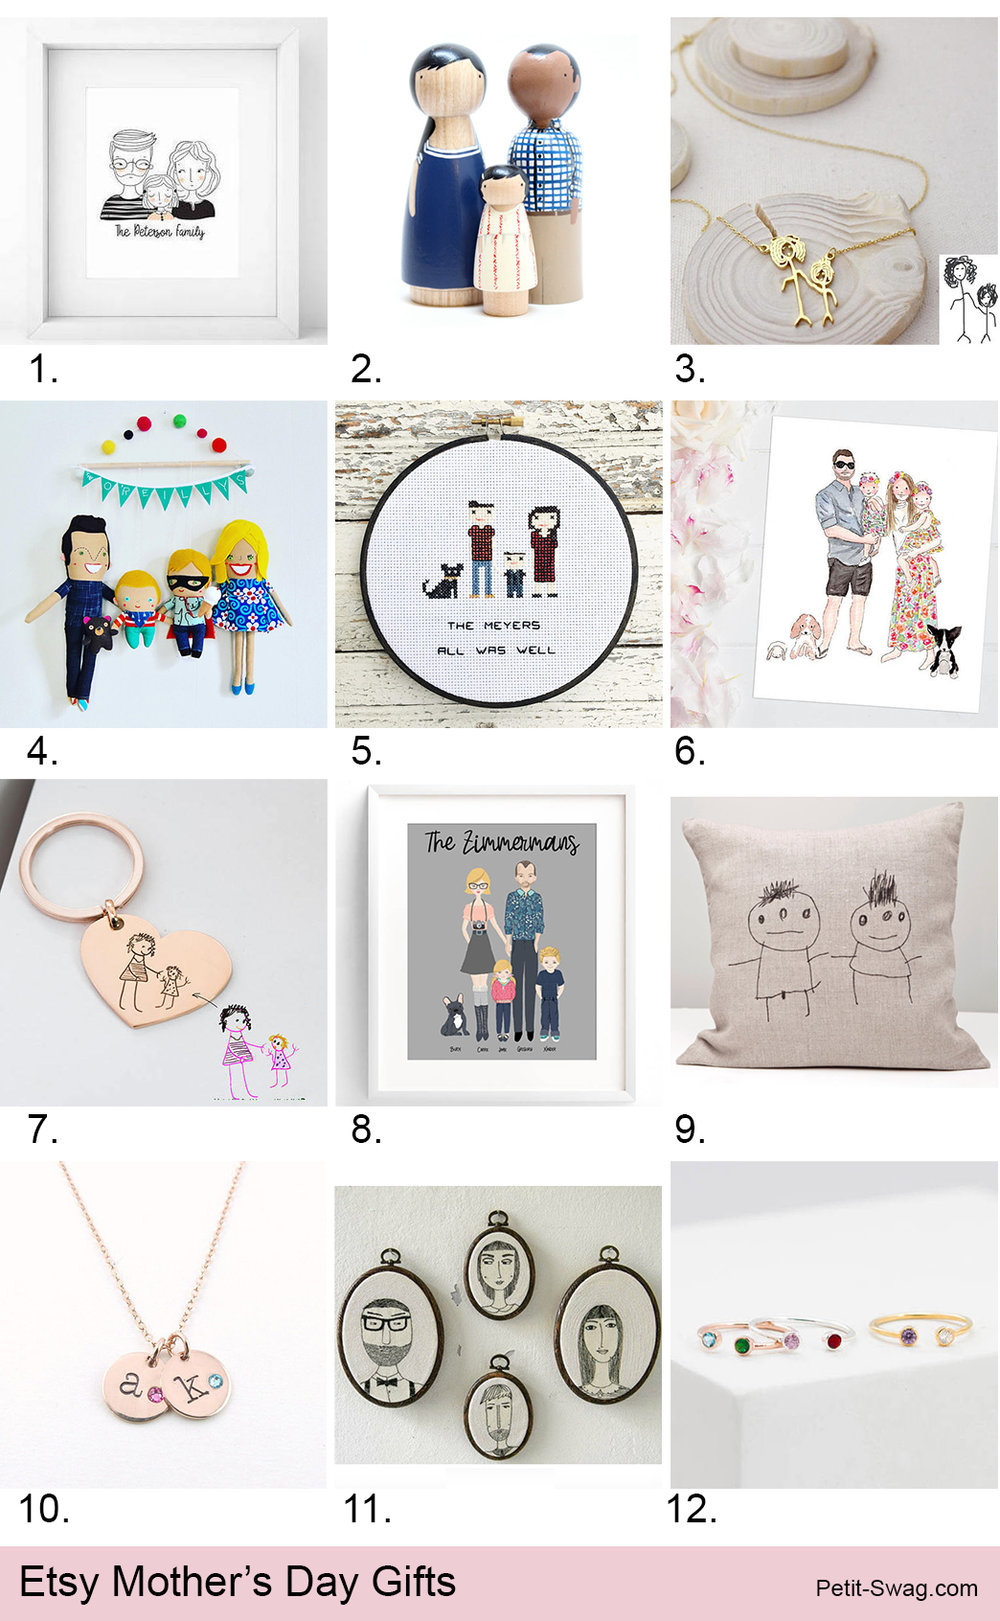 Etsy Mother's Day Gifts | Petit-Swag.jpg